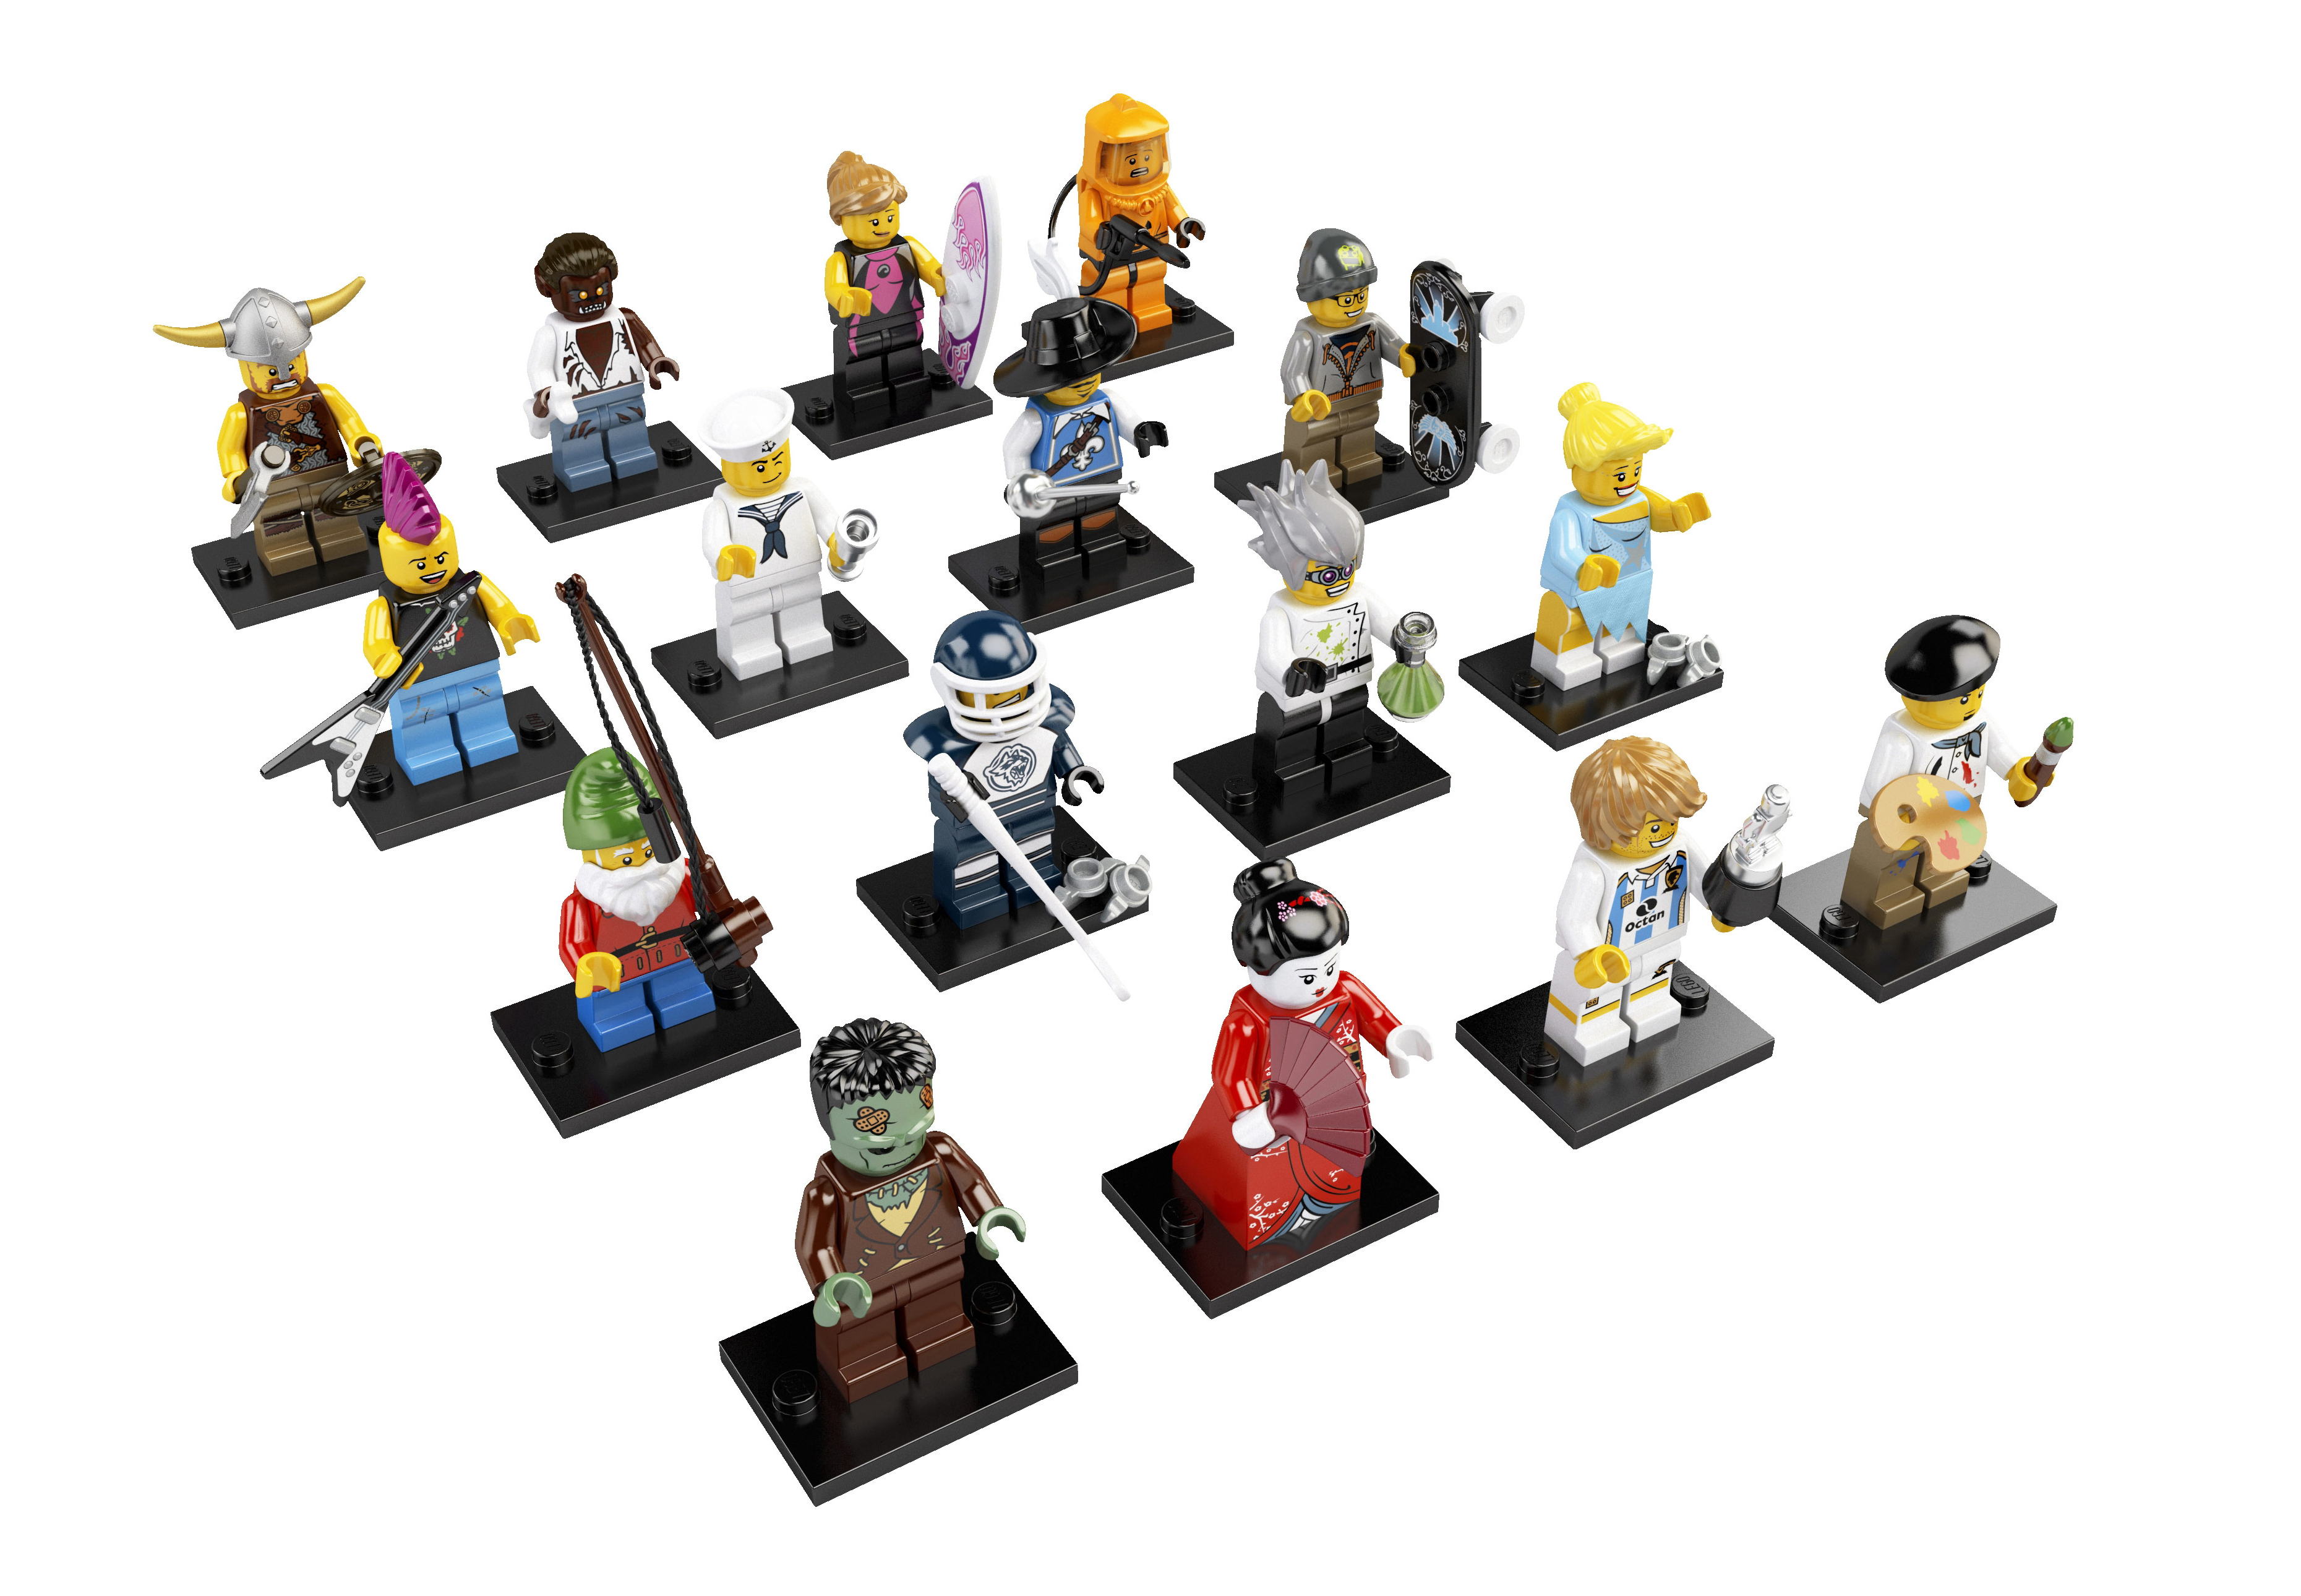 item 8804 pieces 113 each counted once minifigures artist crazy